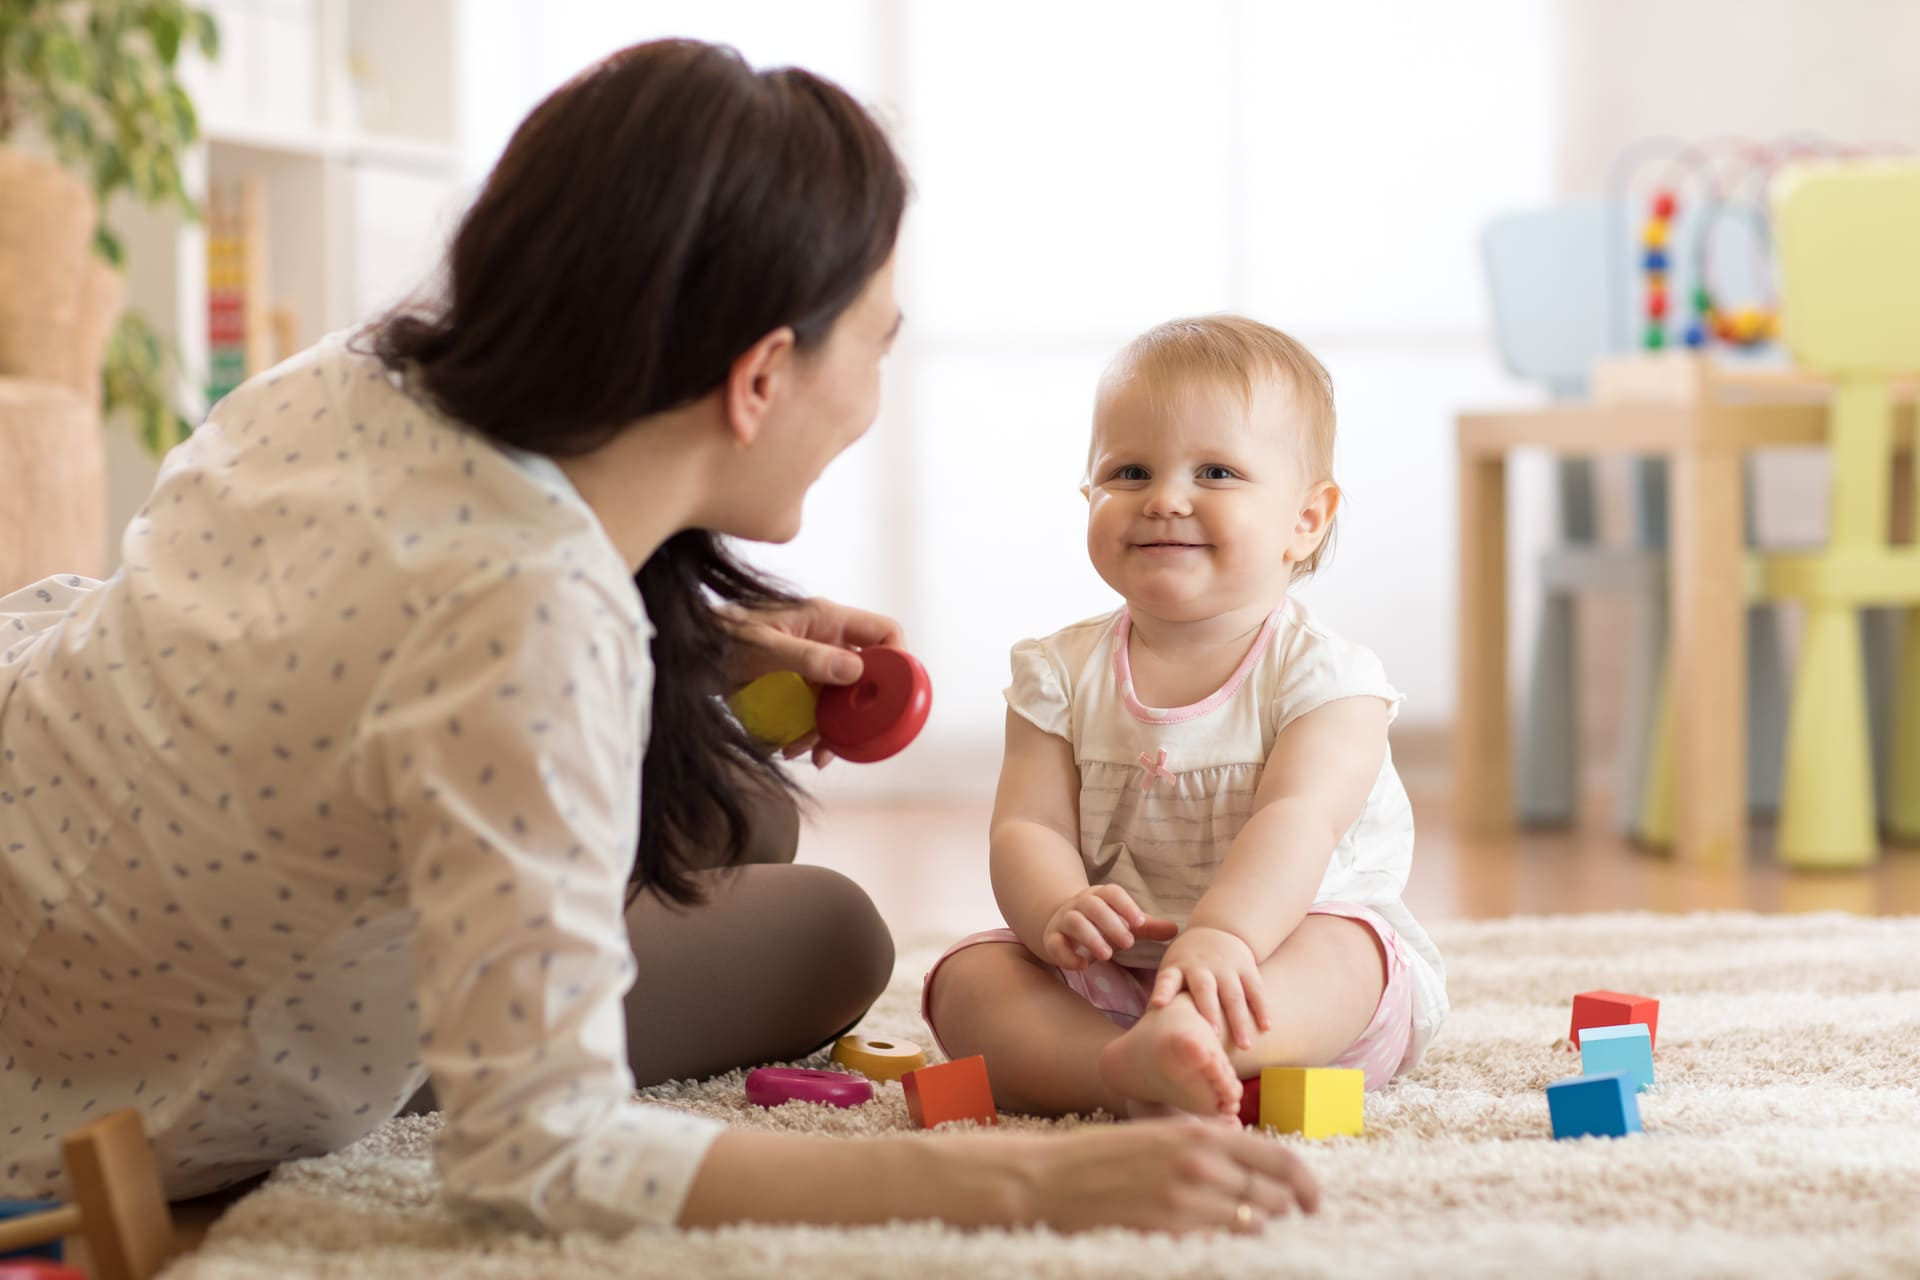 How to Become a Professional Nanny?